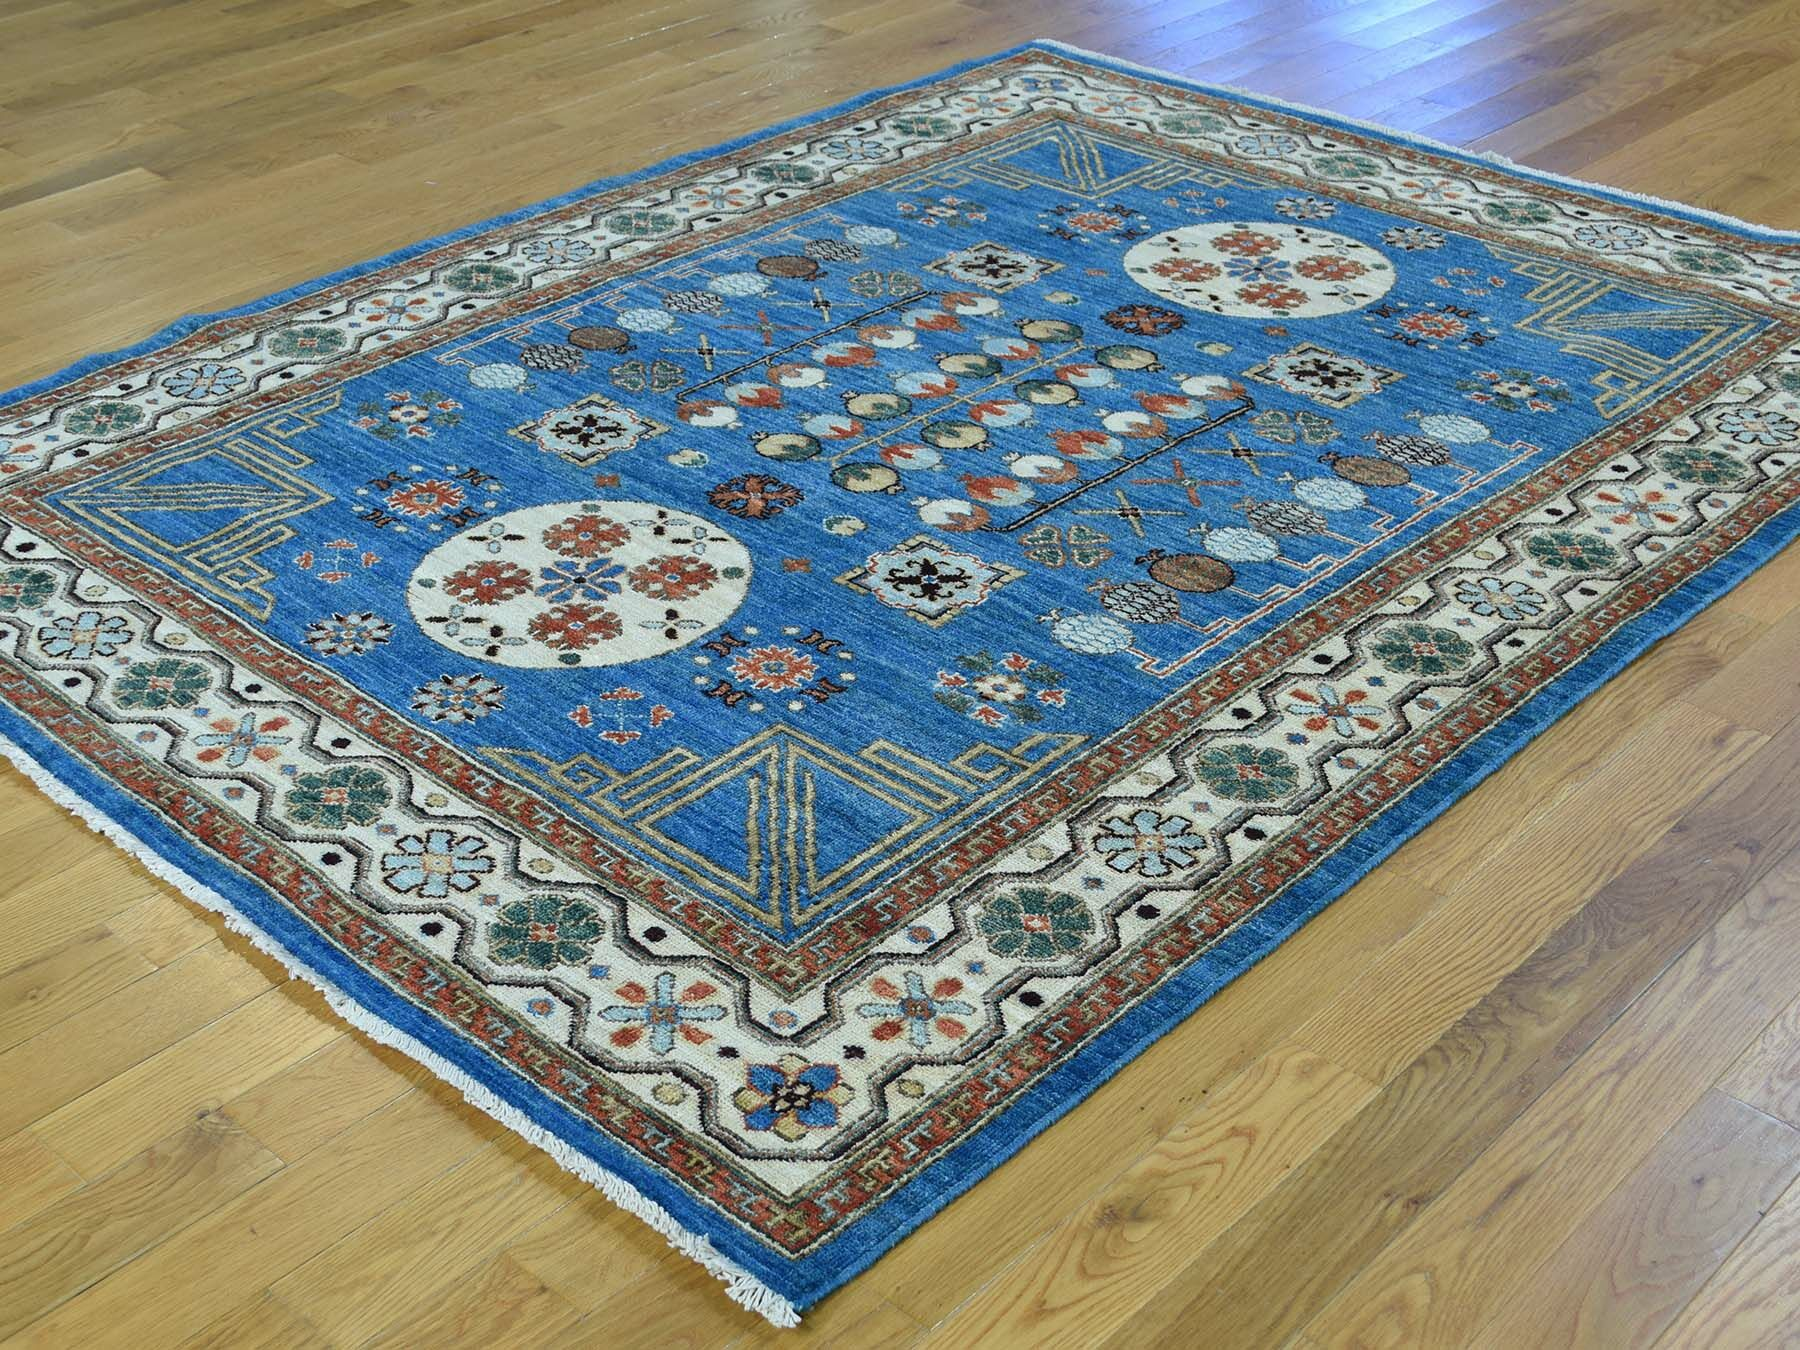 One-of-a-Kind Beauchemin Design Handwoven Wool Area Rug